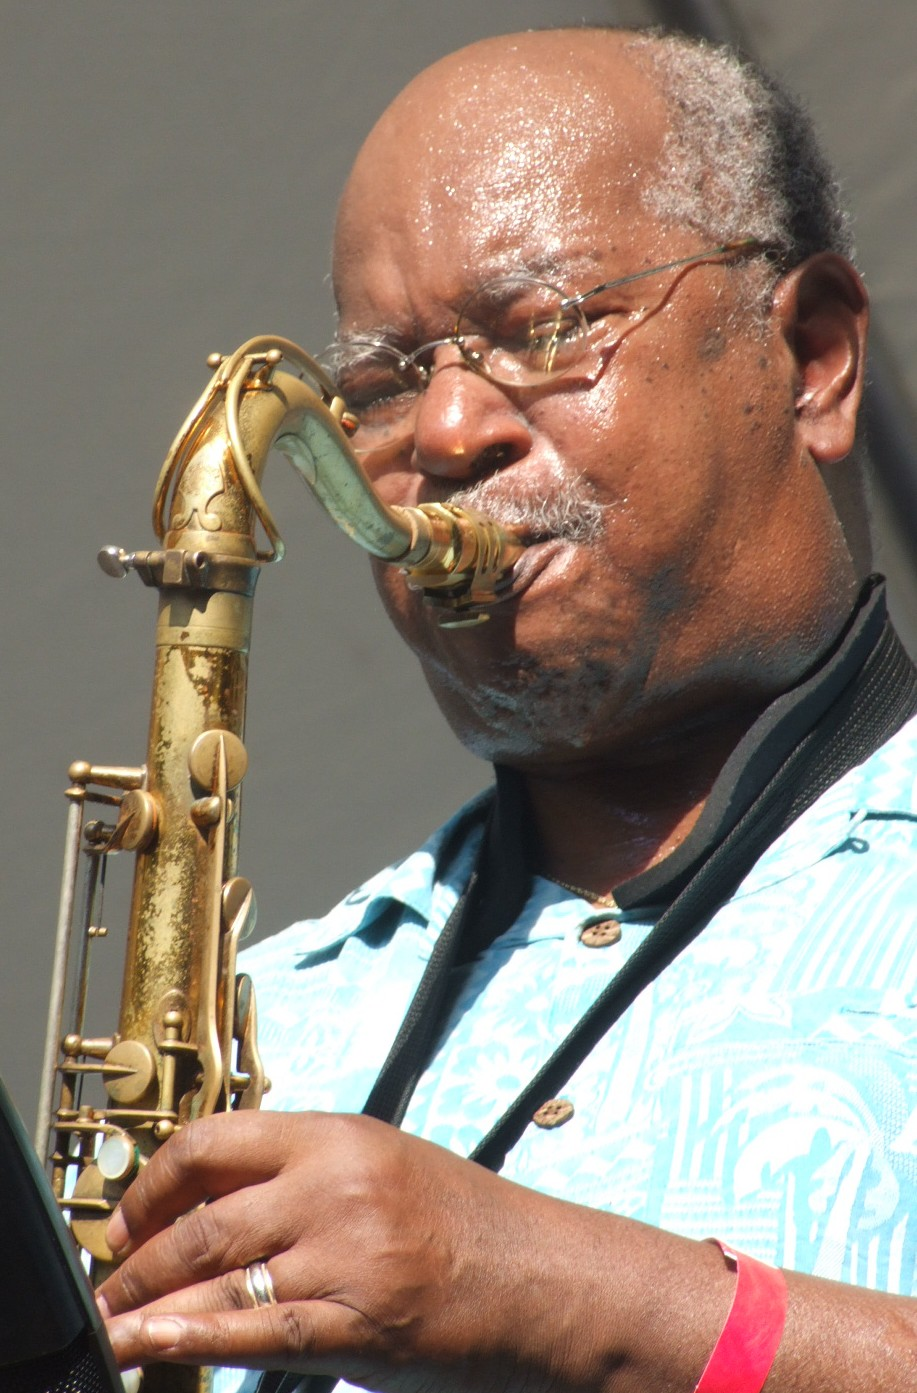 2008 Chicago Jazz Festival, Friday: Ari Brown Did a Guest Stint in a Set Led by Bluesman Billy Branch